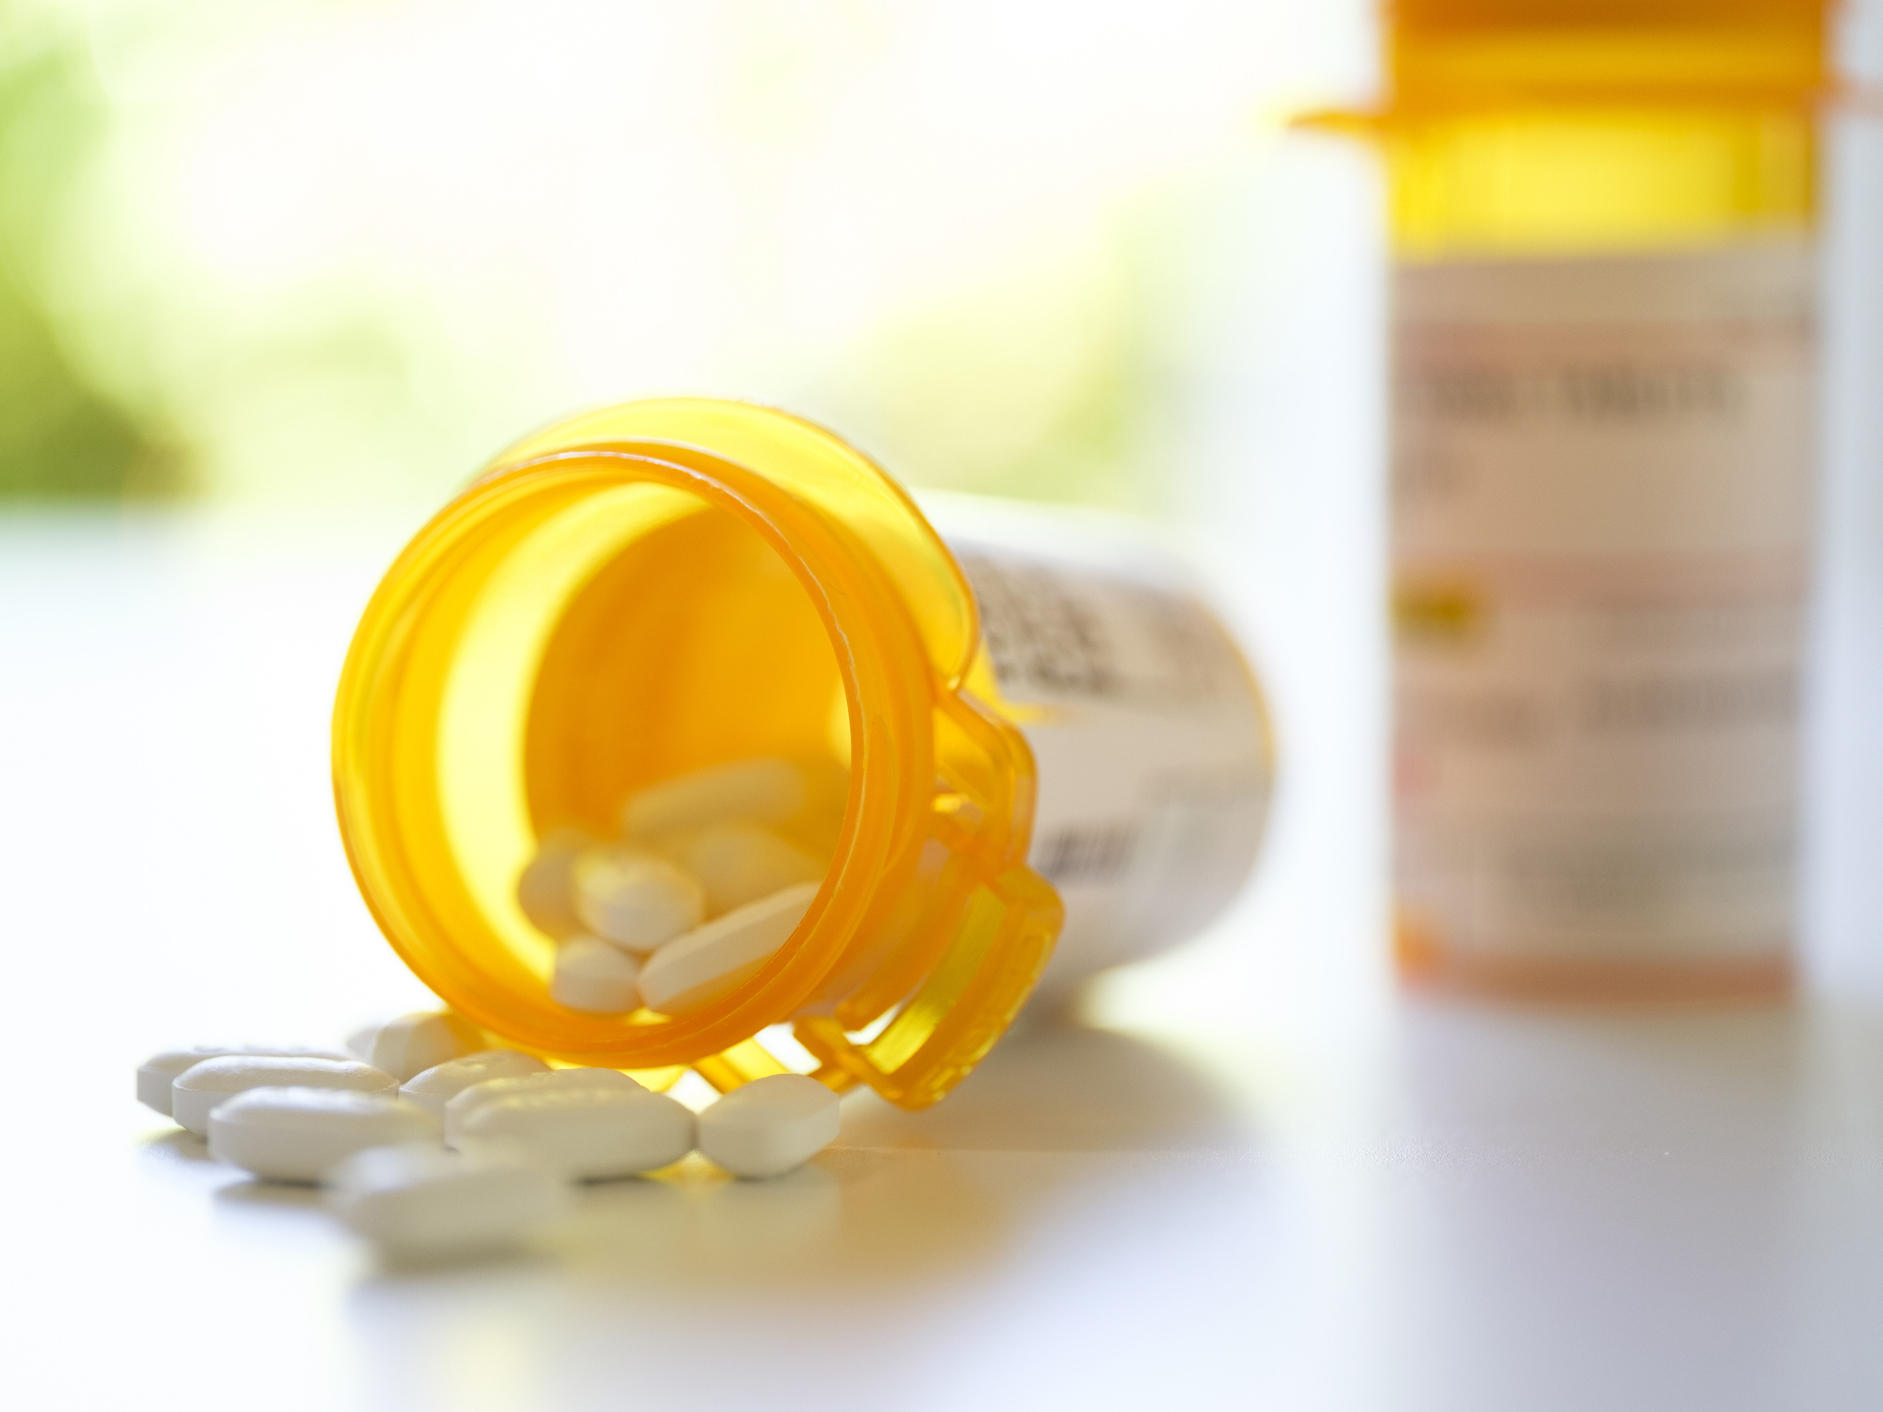 The Generic Drugs You're Taking May Not Be As Safe Or